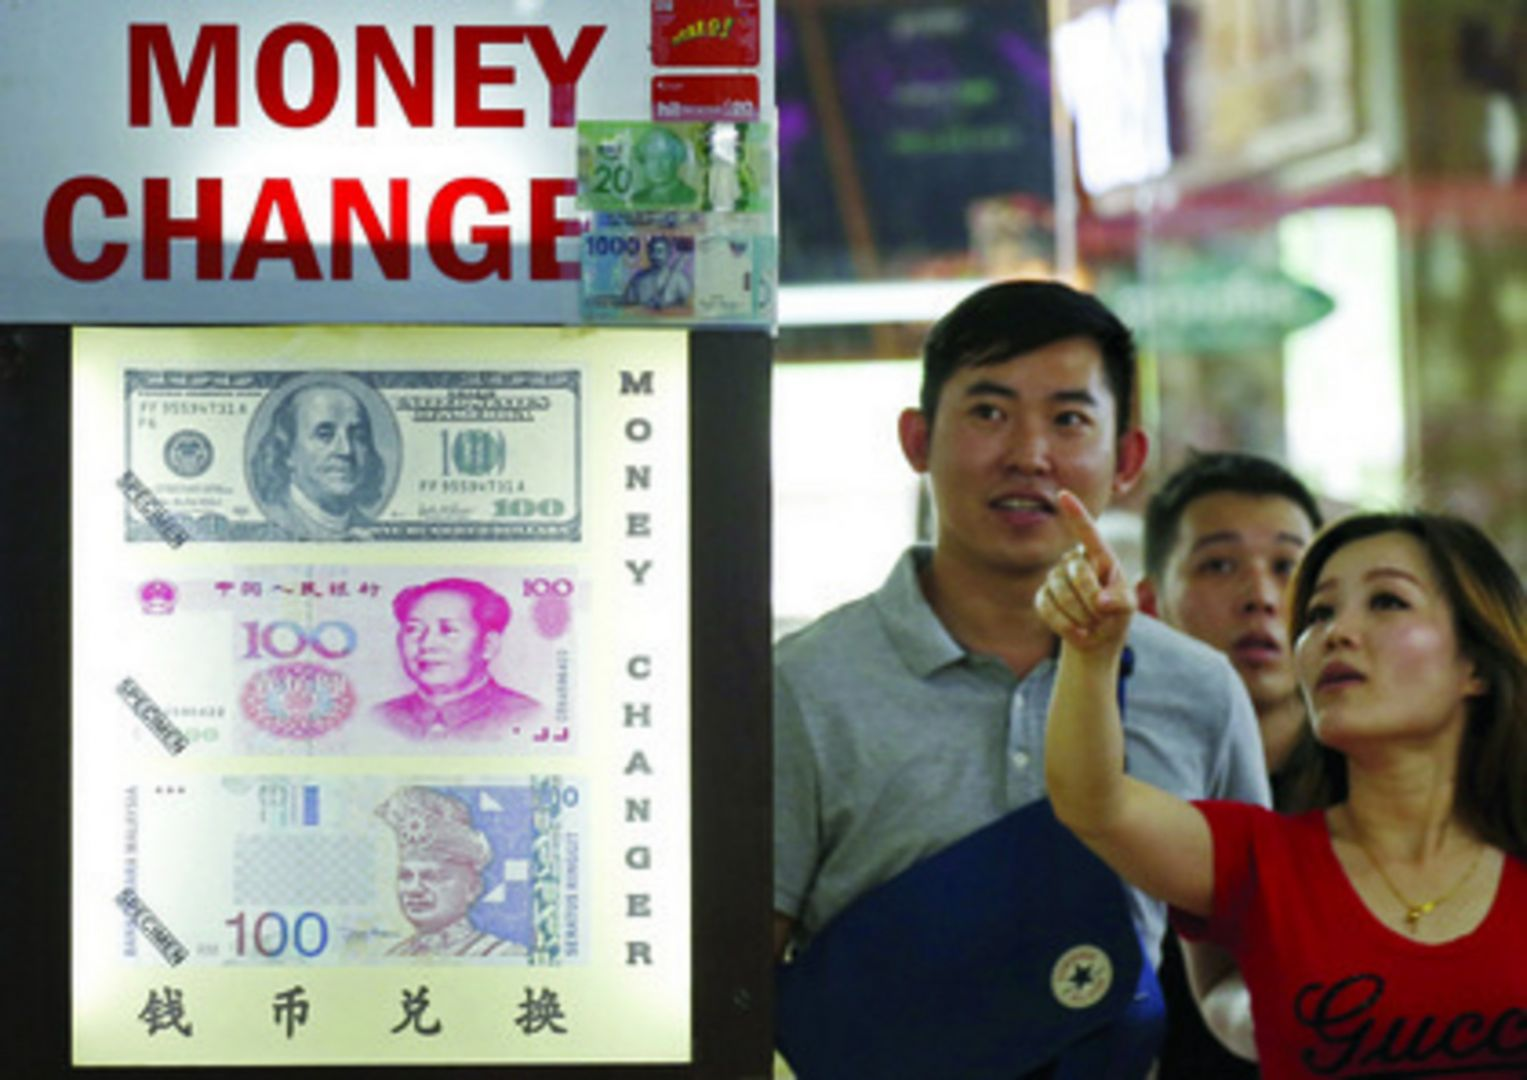 The ringgit's free-fall led to a surge in demand for the currency in Singapore, with many people flocking to money changers yesterday. Photo: REUTERS